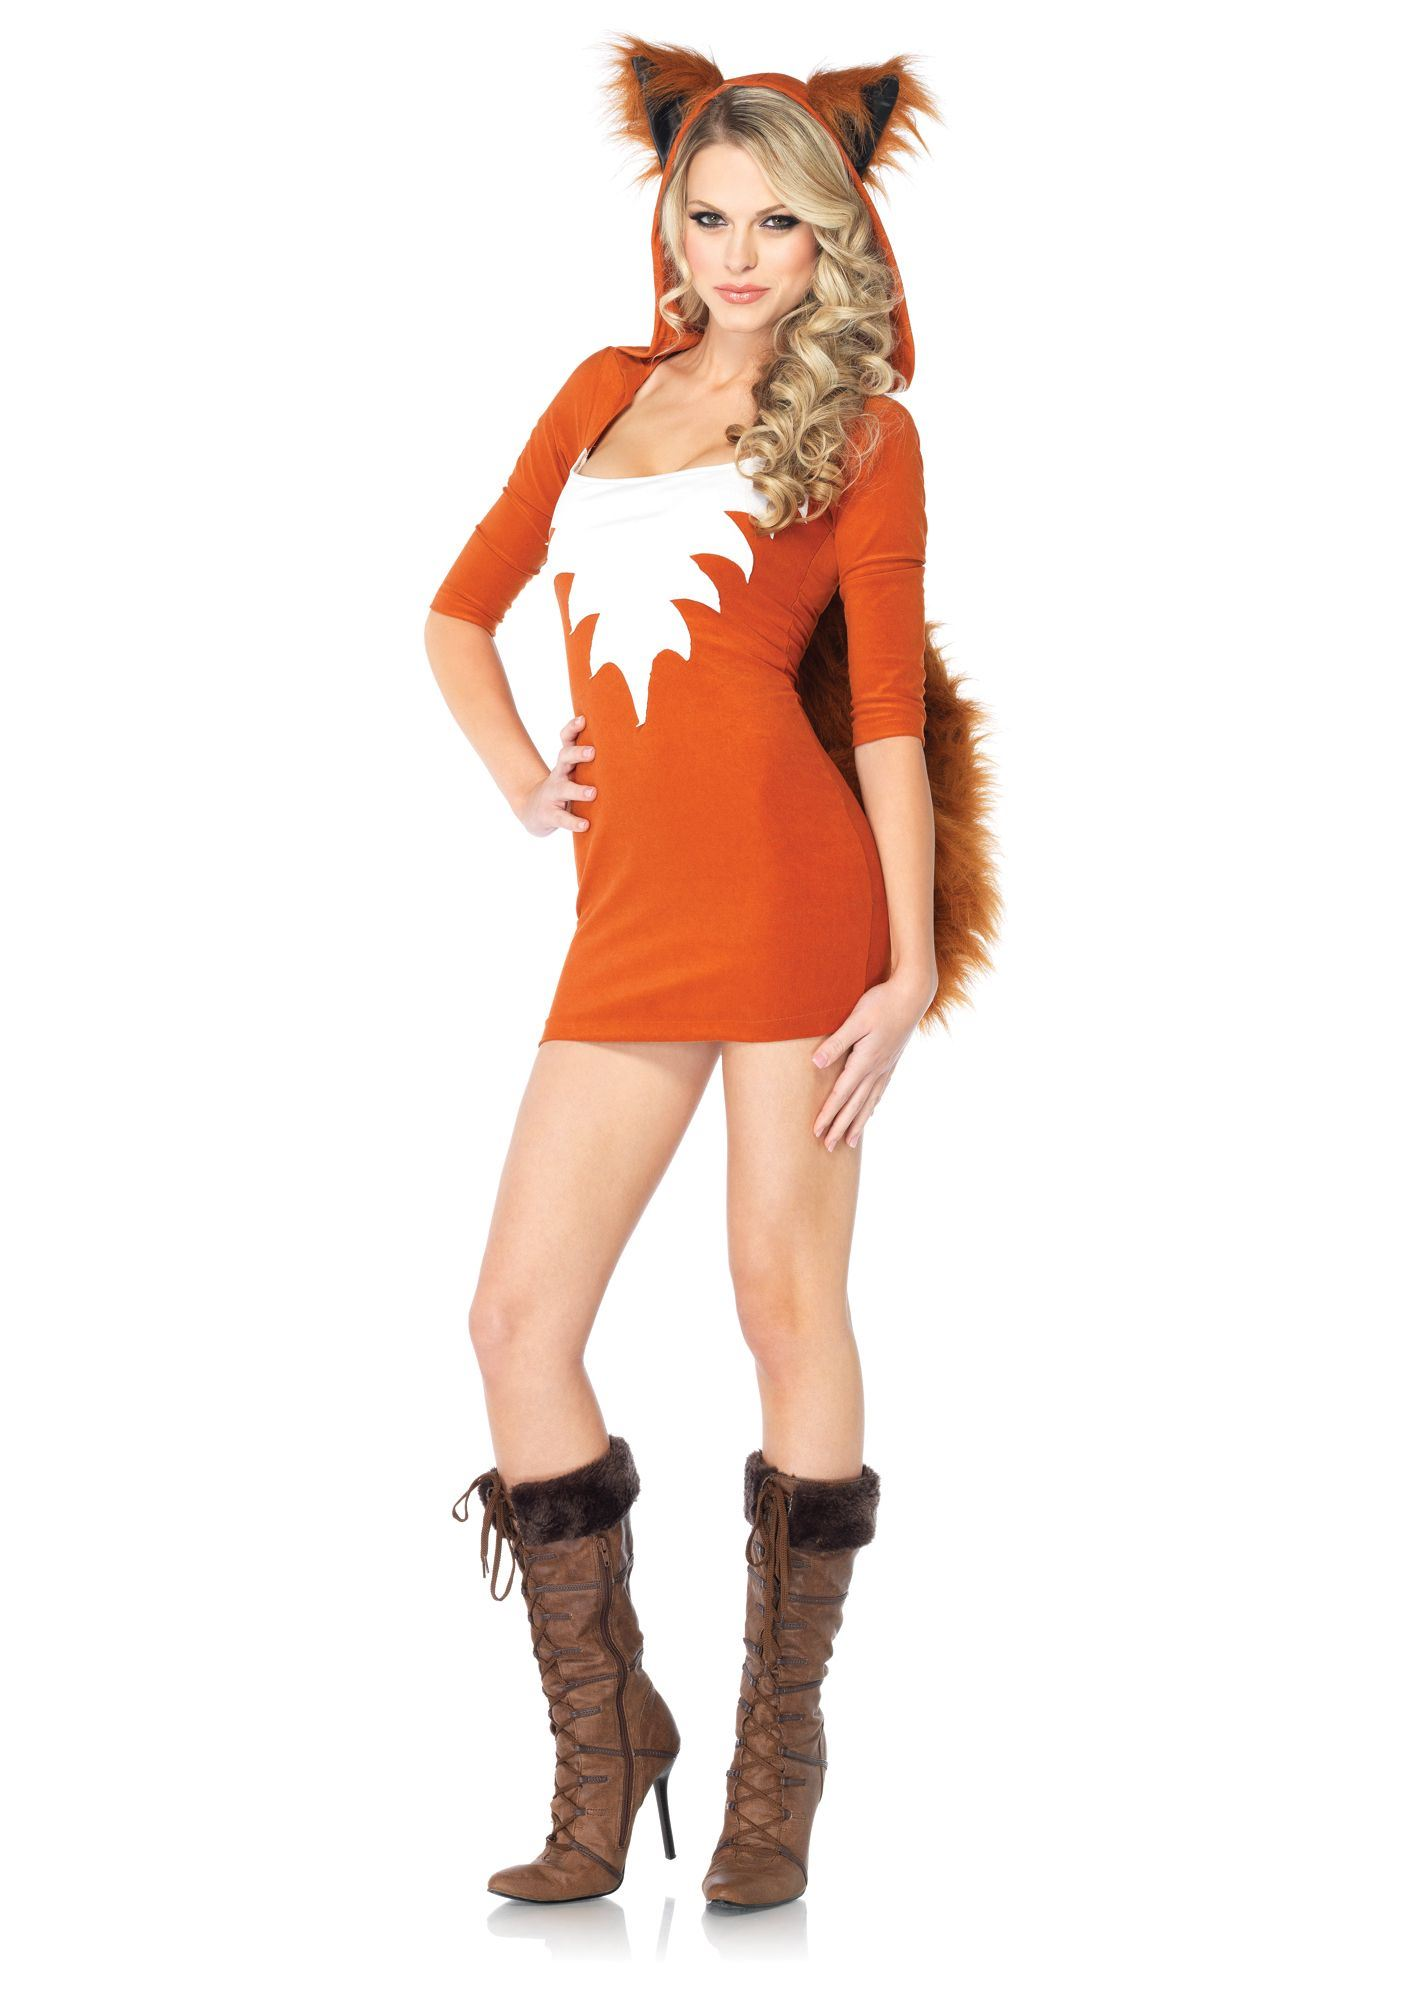 Foxy roxy halloween costume 49 99 the costume land